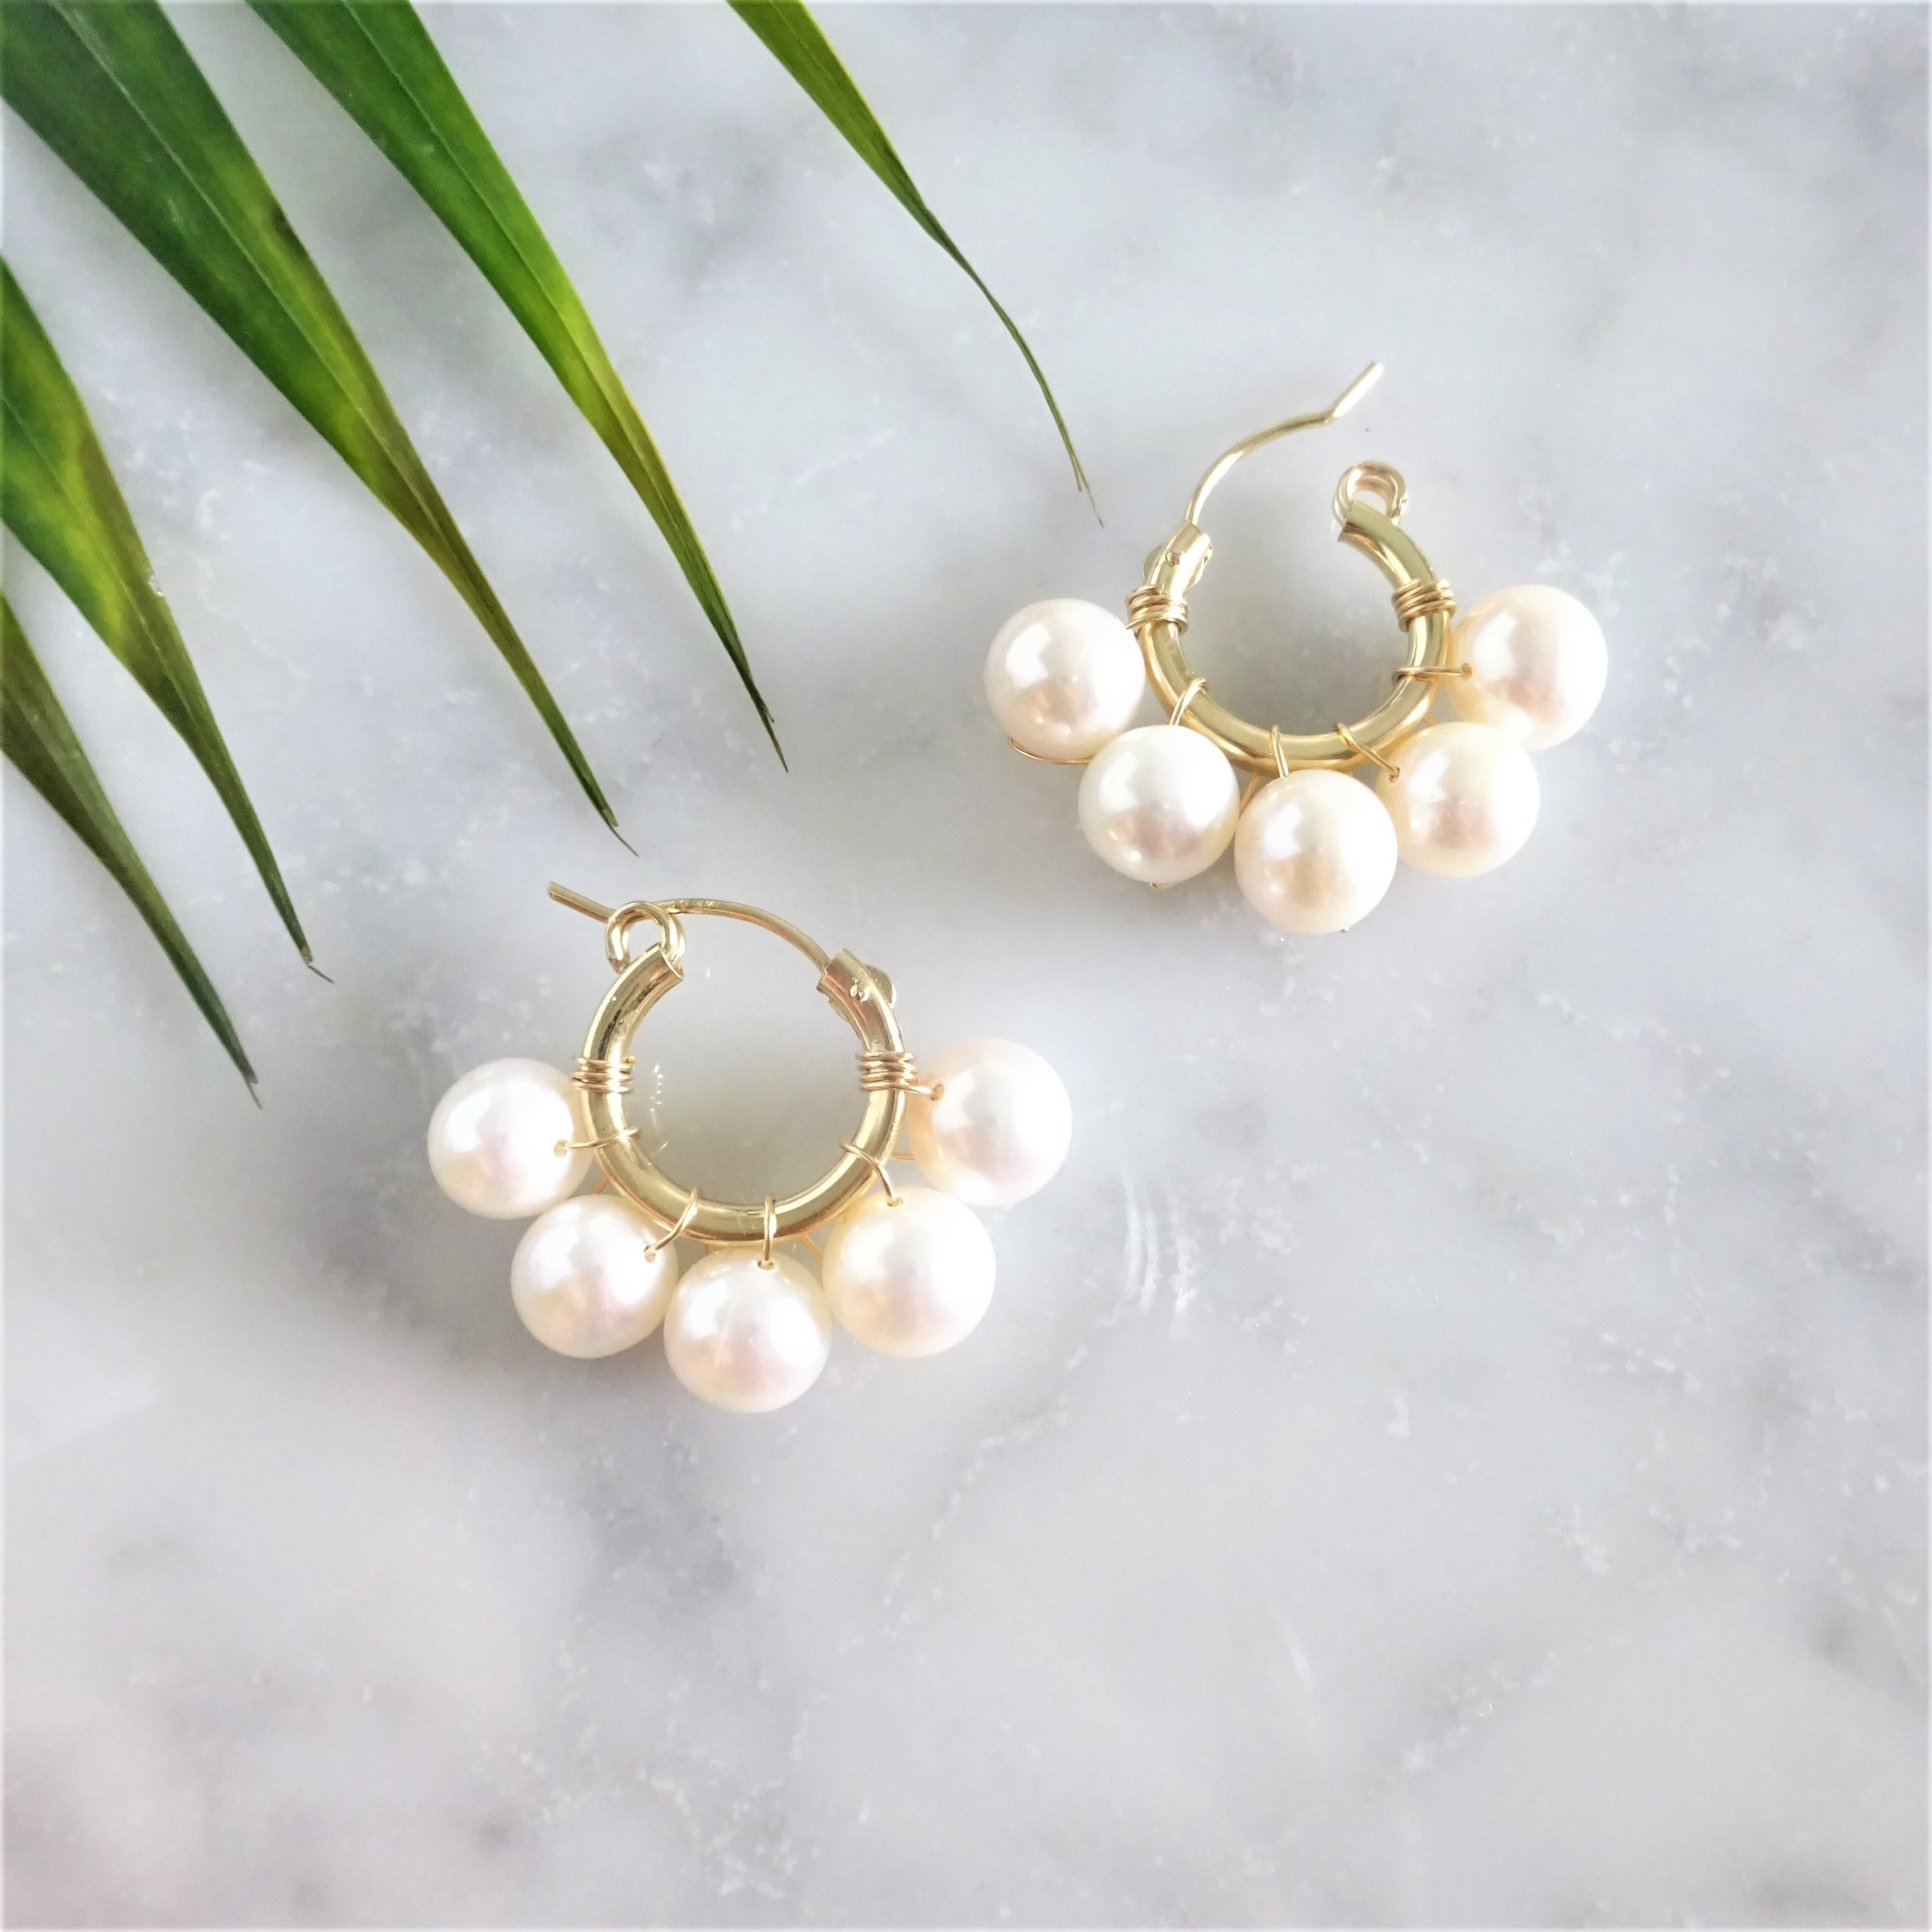 送料無料 Big pearl♡bubble earring/pierced earring パール